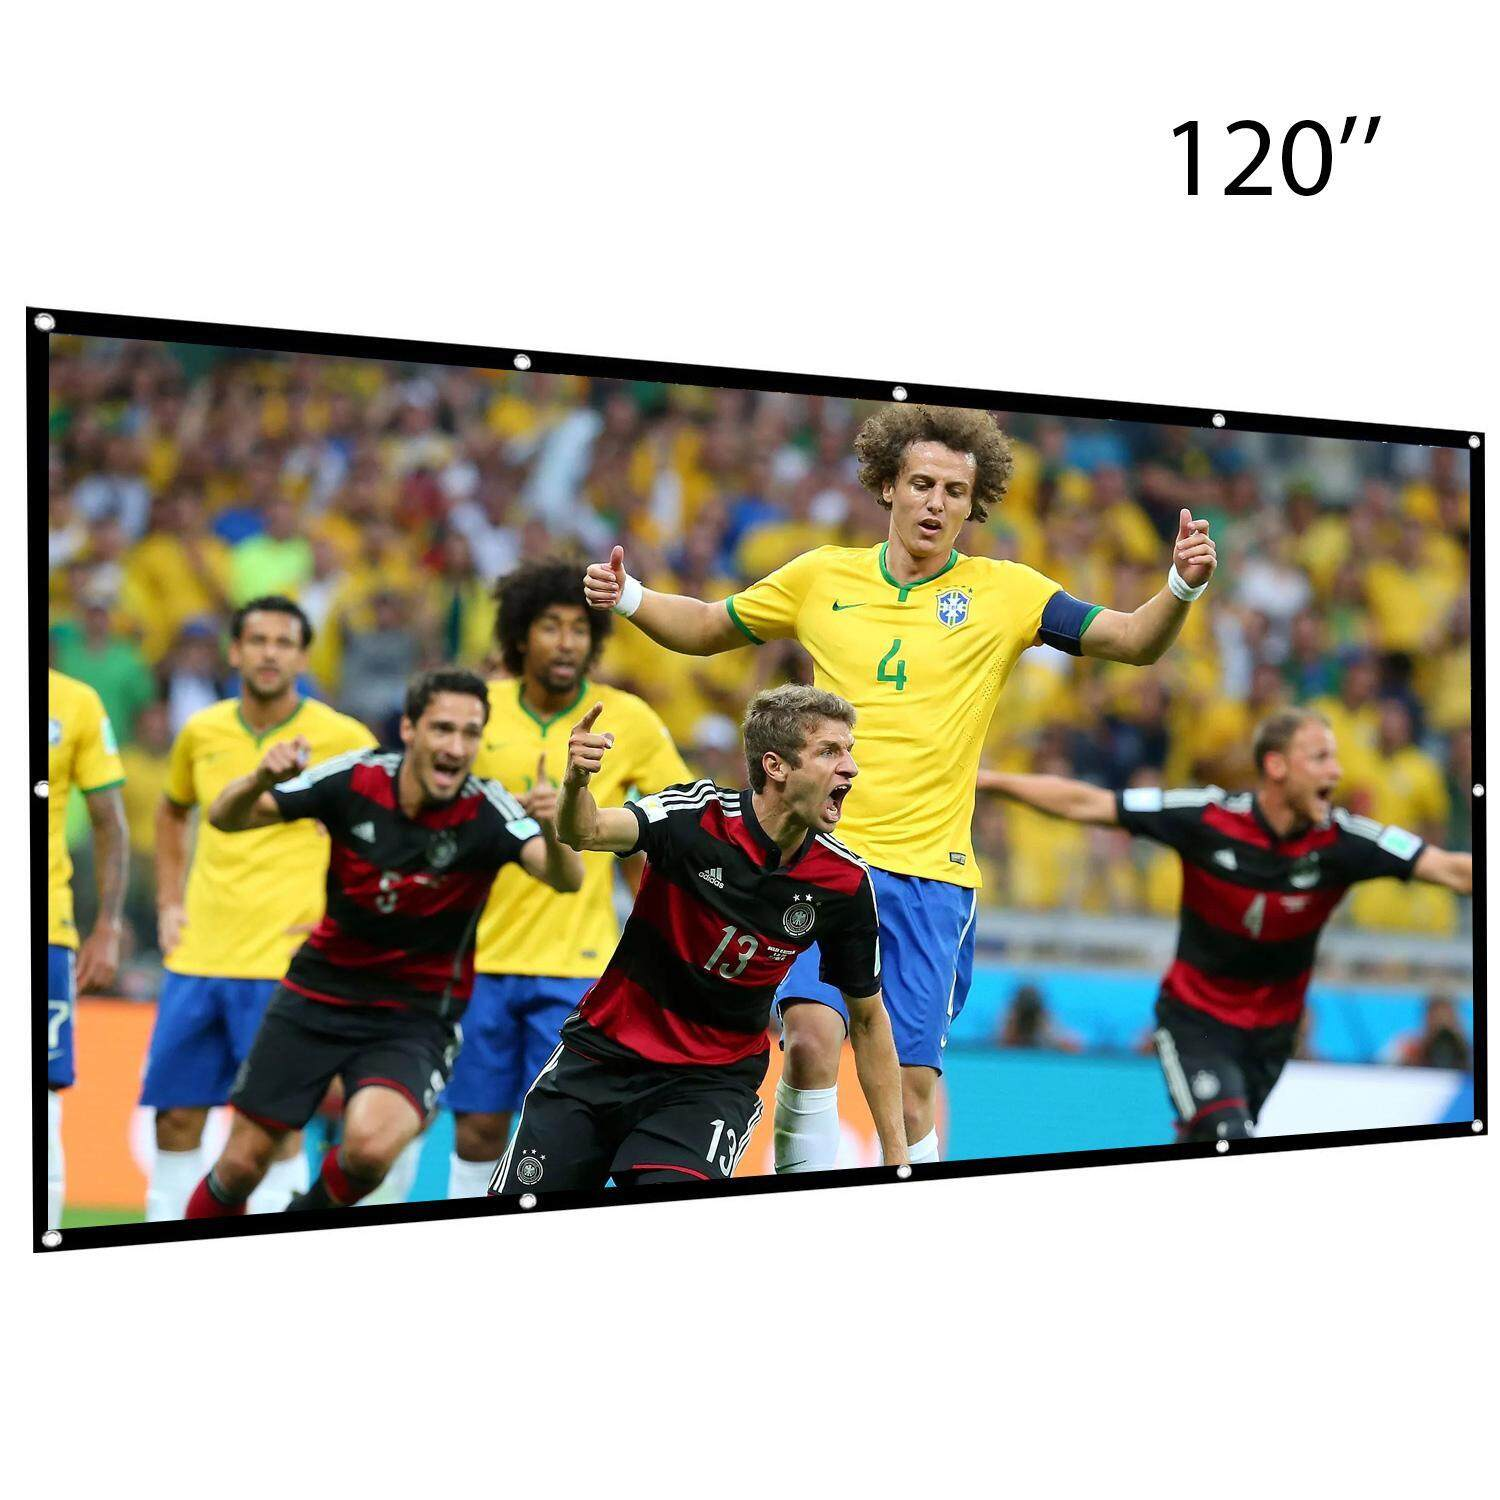 facb0a630516cc Chiants 120 Inch Projection Screen-16:9 HD Portable Projector Movies Screen  Foldable Anti